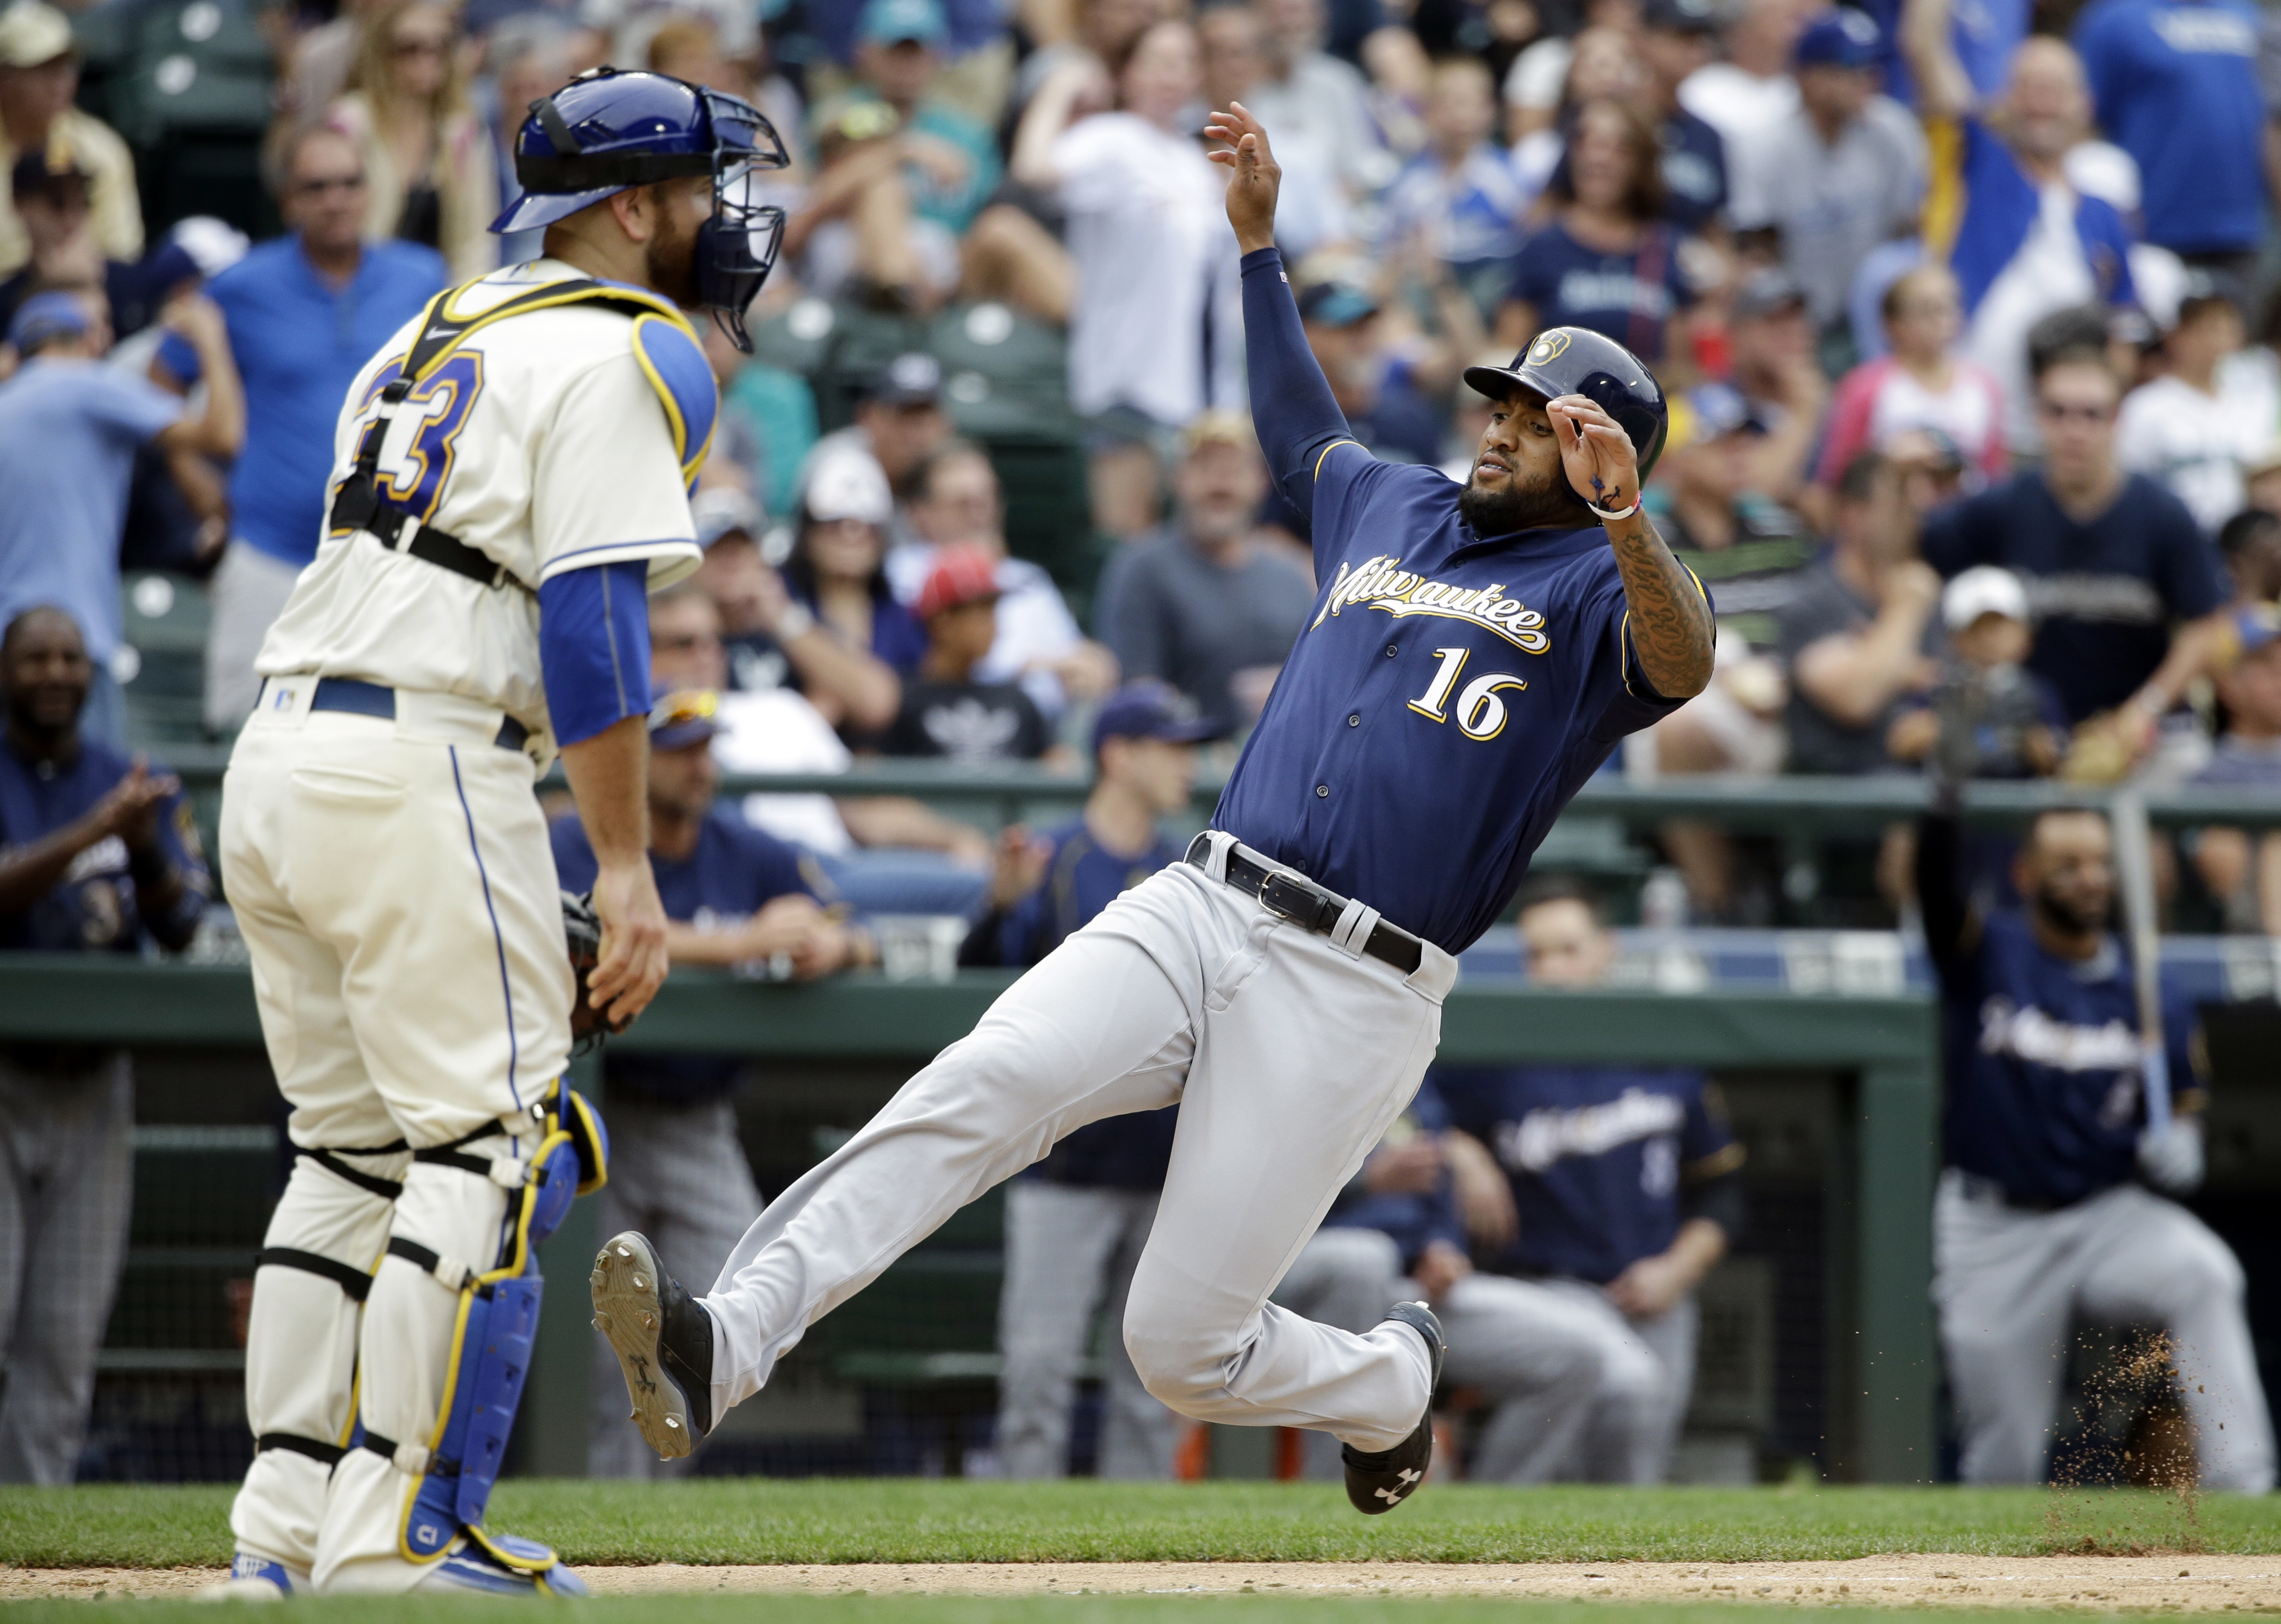 Seattle Mariners catcher Chris Iannetta waits for the throw as Milwaukee Brewers' Domingo Santana slides safely into home to score in the ninth inning of a baseball game, Sunday, Aug. 21, 2016, in Seattle. (AP Photo/Elaine Thompson)